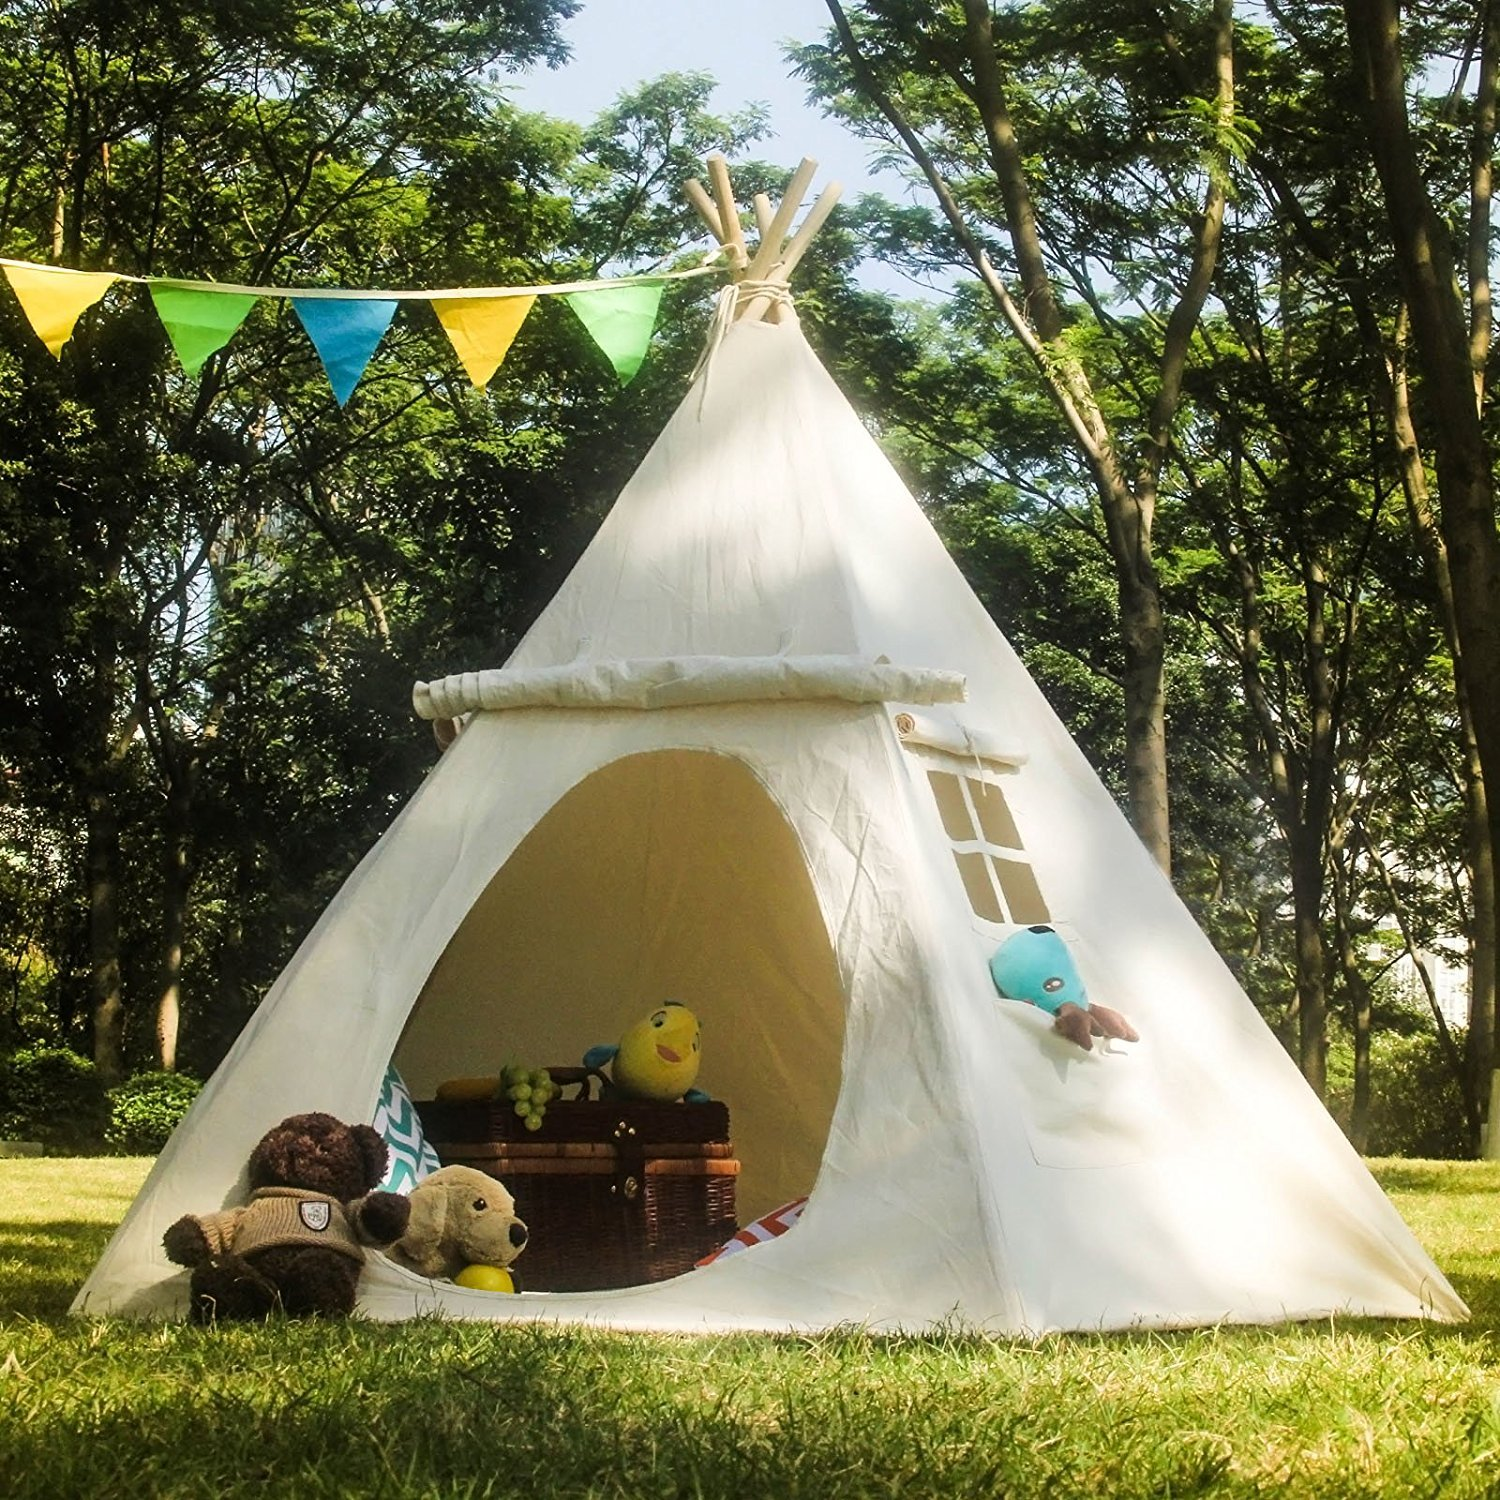 Lavievert Teepee Children Indian Playhouse Cotton Canvas Kids Play Tent for Indoor or Outdoor Play ( & Wigwam Tent: Amazon.co.uk